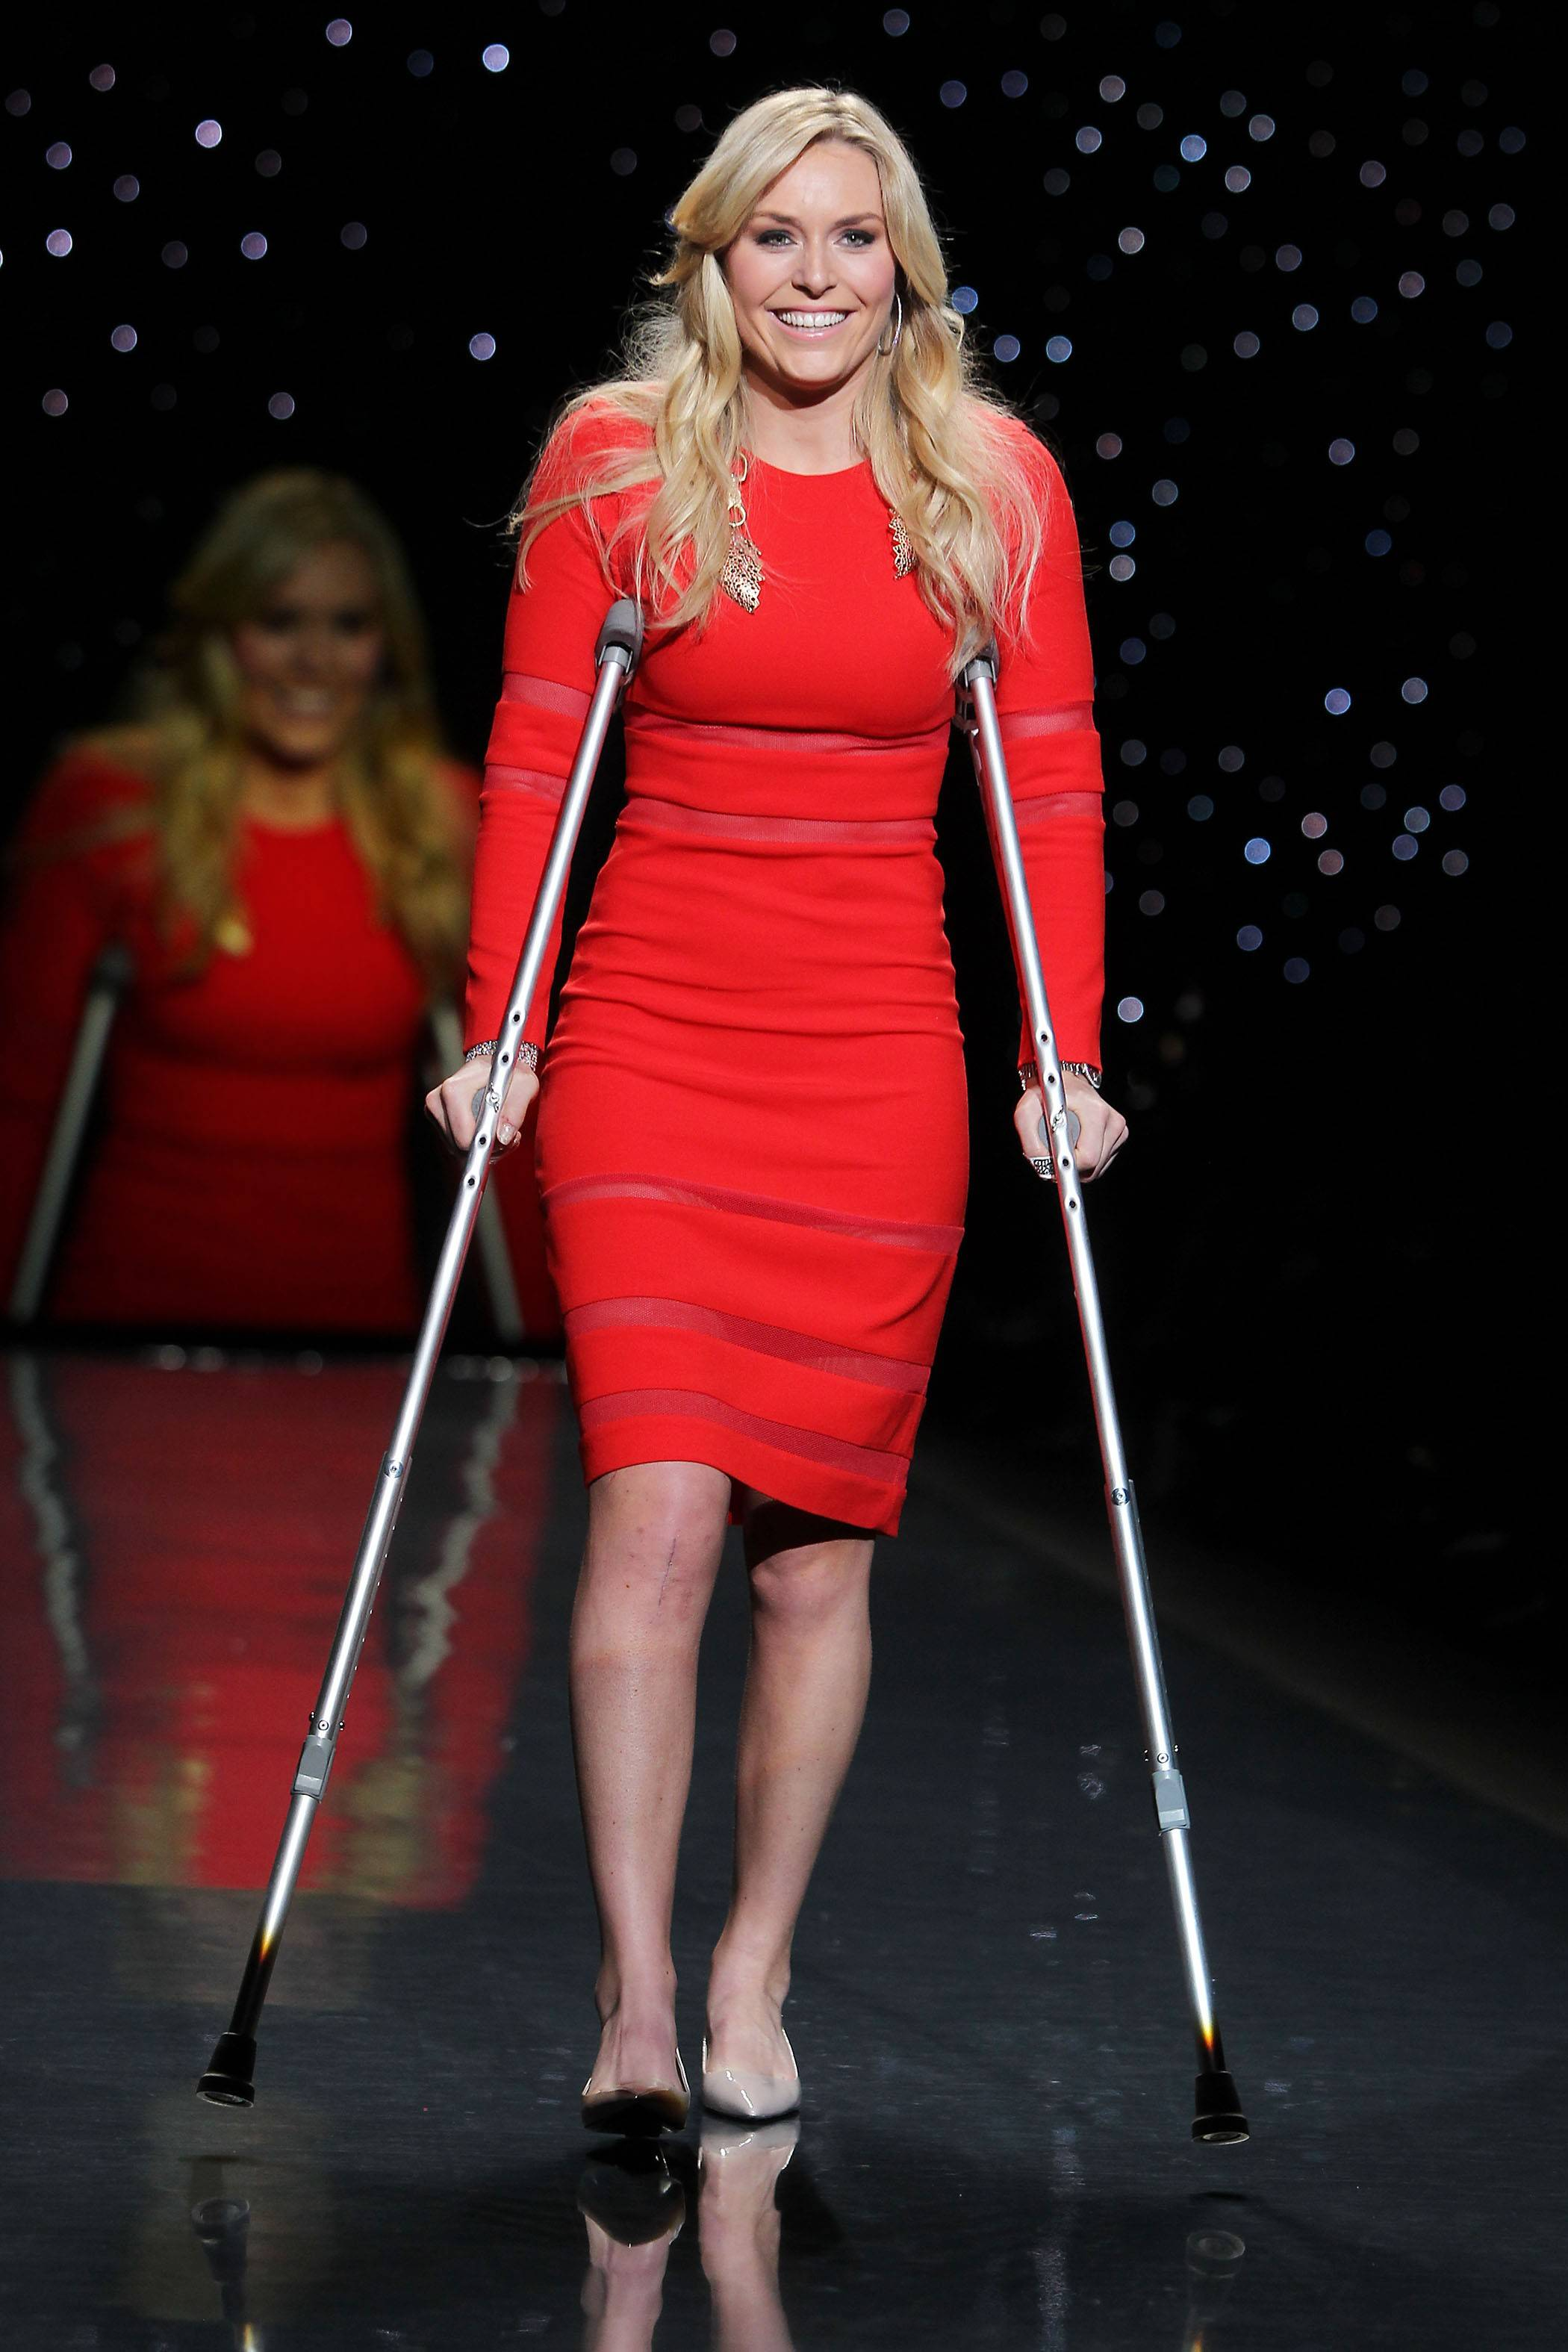 U.S. Olympic team skier Lindsey Vonn was wearing a Cynthia Rowley dress during a Fashion Week event in New York in 2014. Rowley will be celebrated in her hometown Barrington from May 29 through June 2.